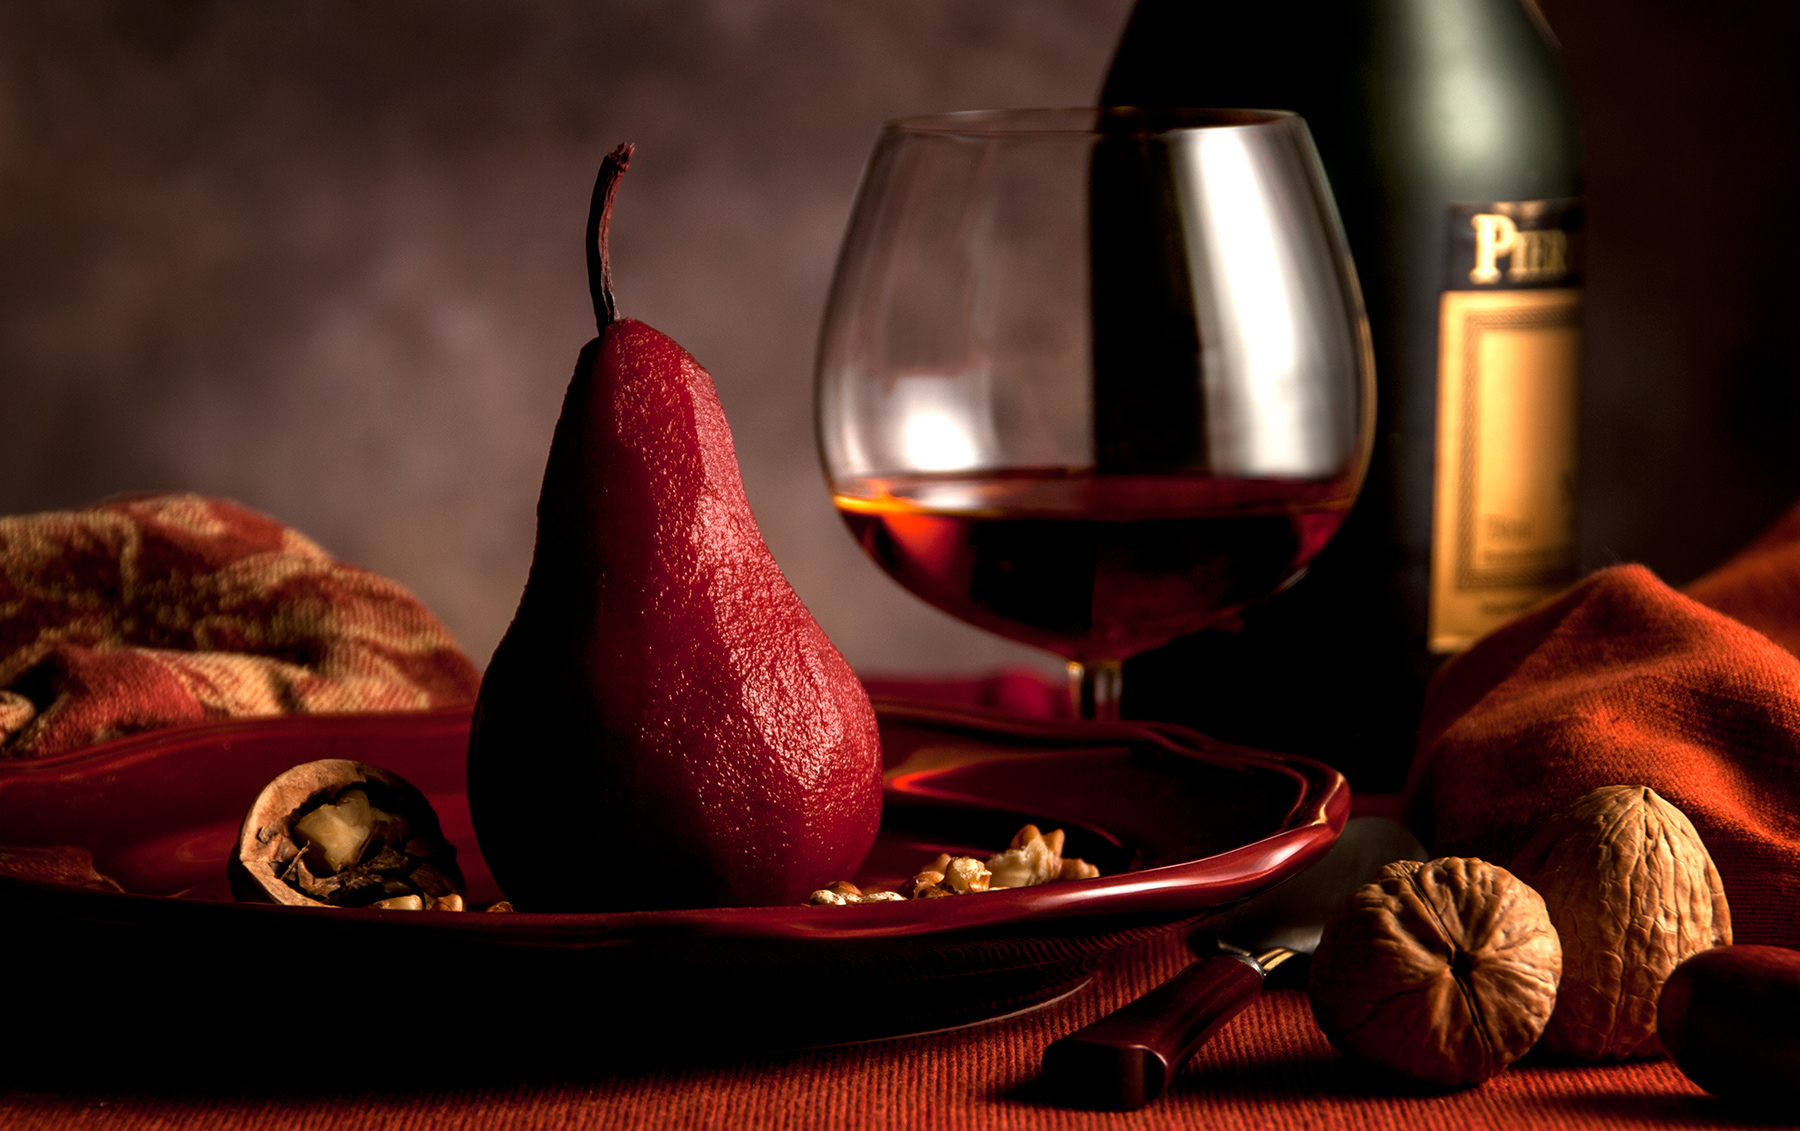 Poached Pears-Carl Kravats Food Photography